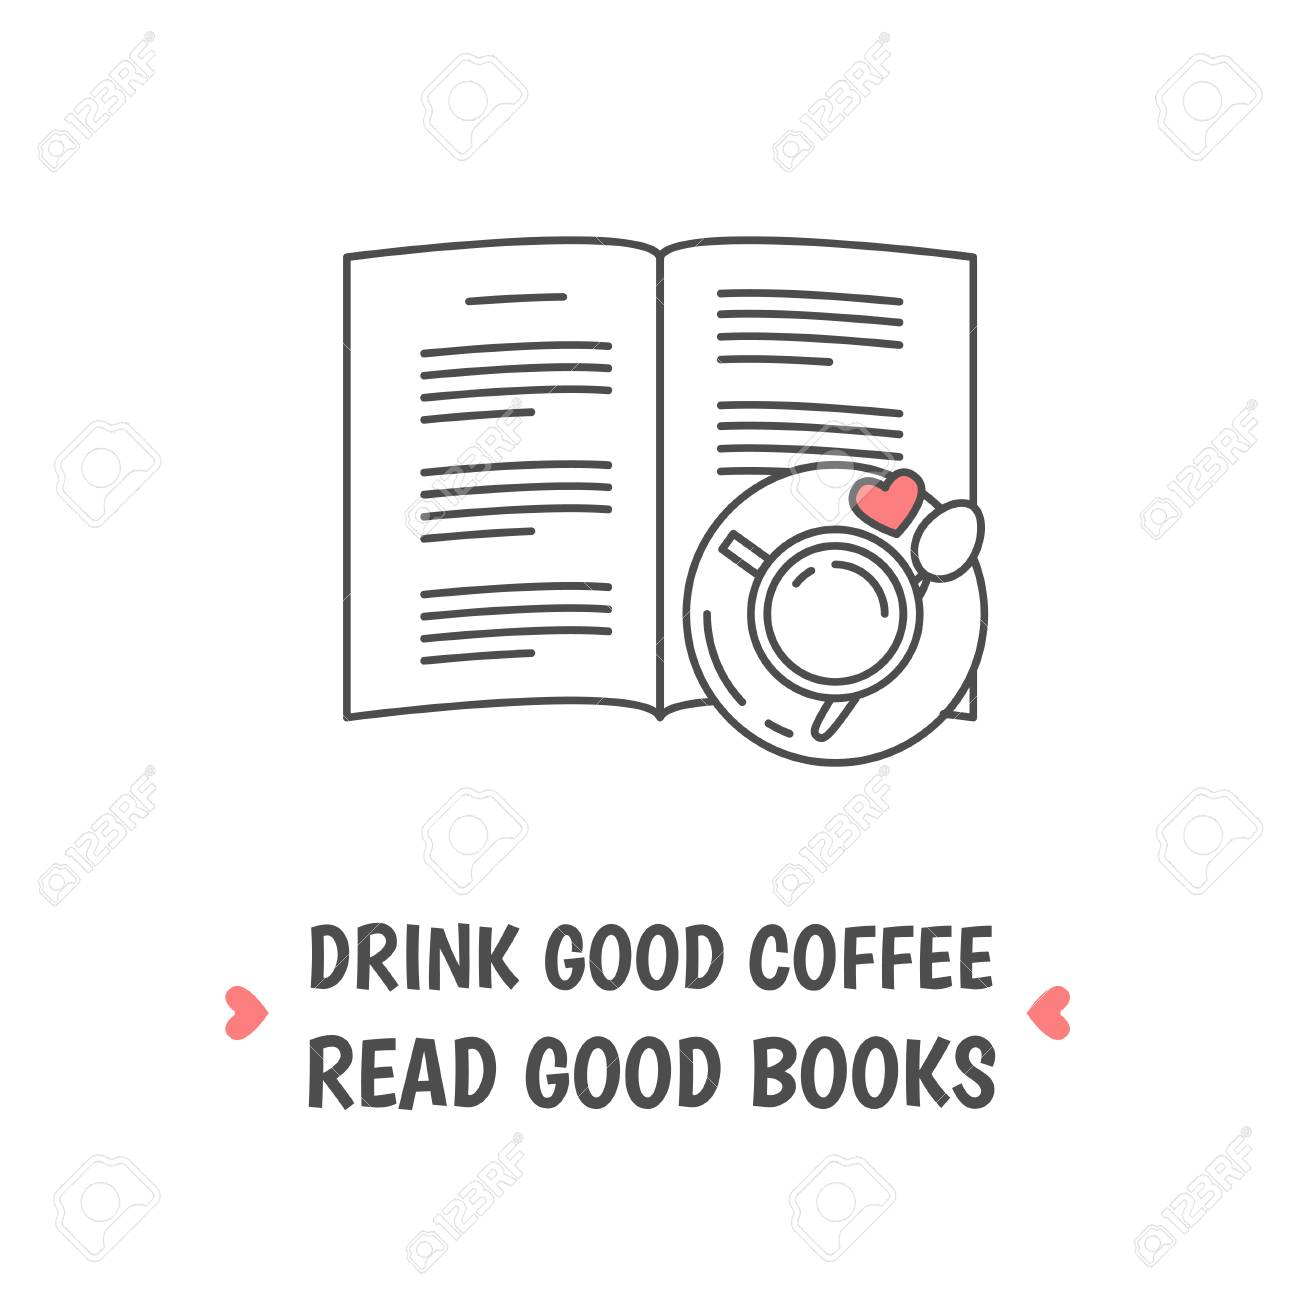 Open Book And Tea Cup With Heart Symbol Quote Drink Good Coffee